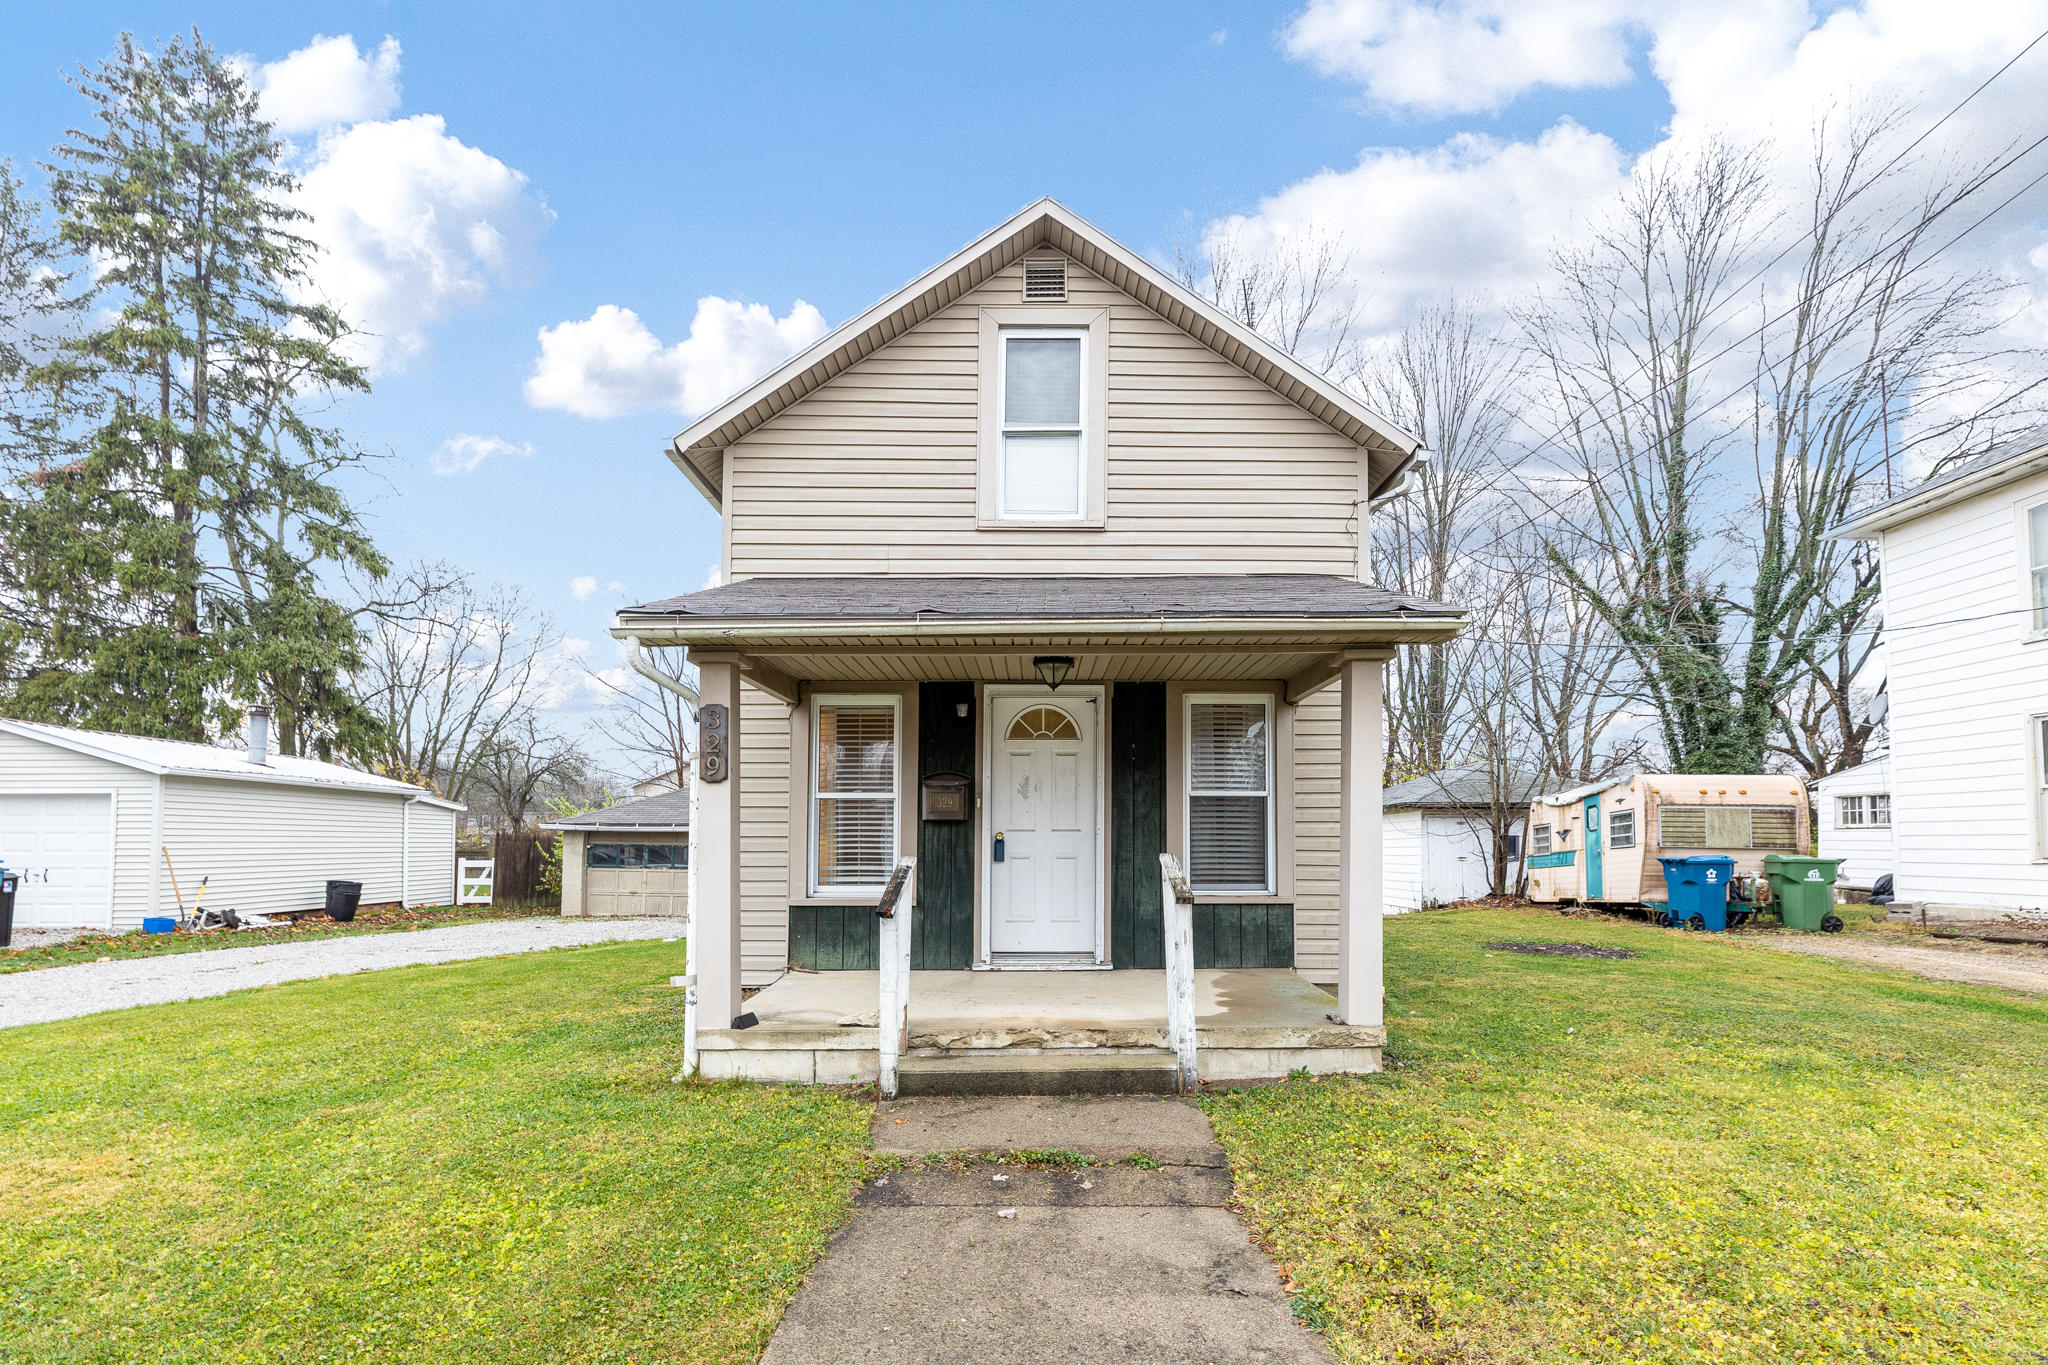 329 Sycamore Street Property Photo - Marysville, OH real estate listing